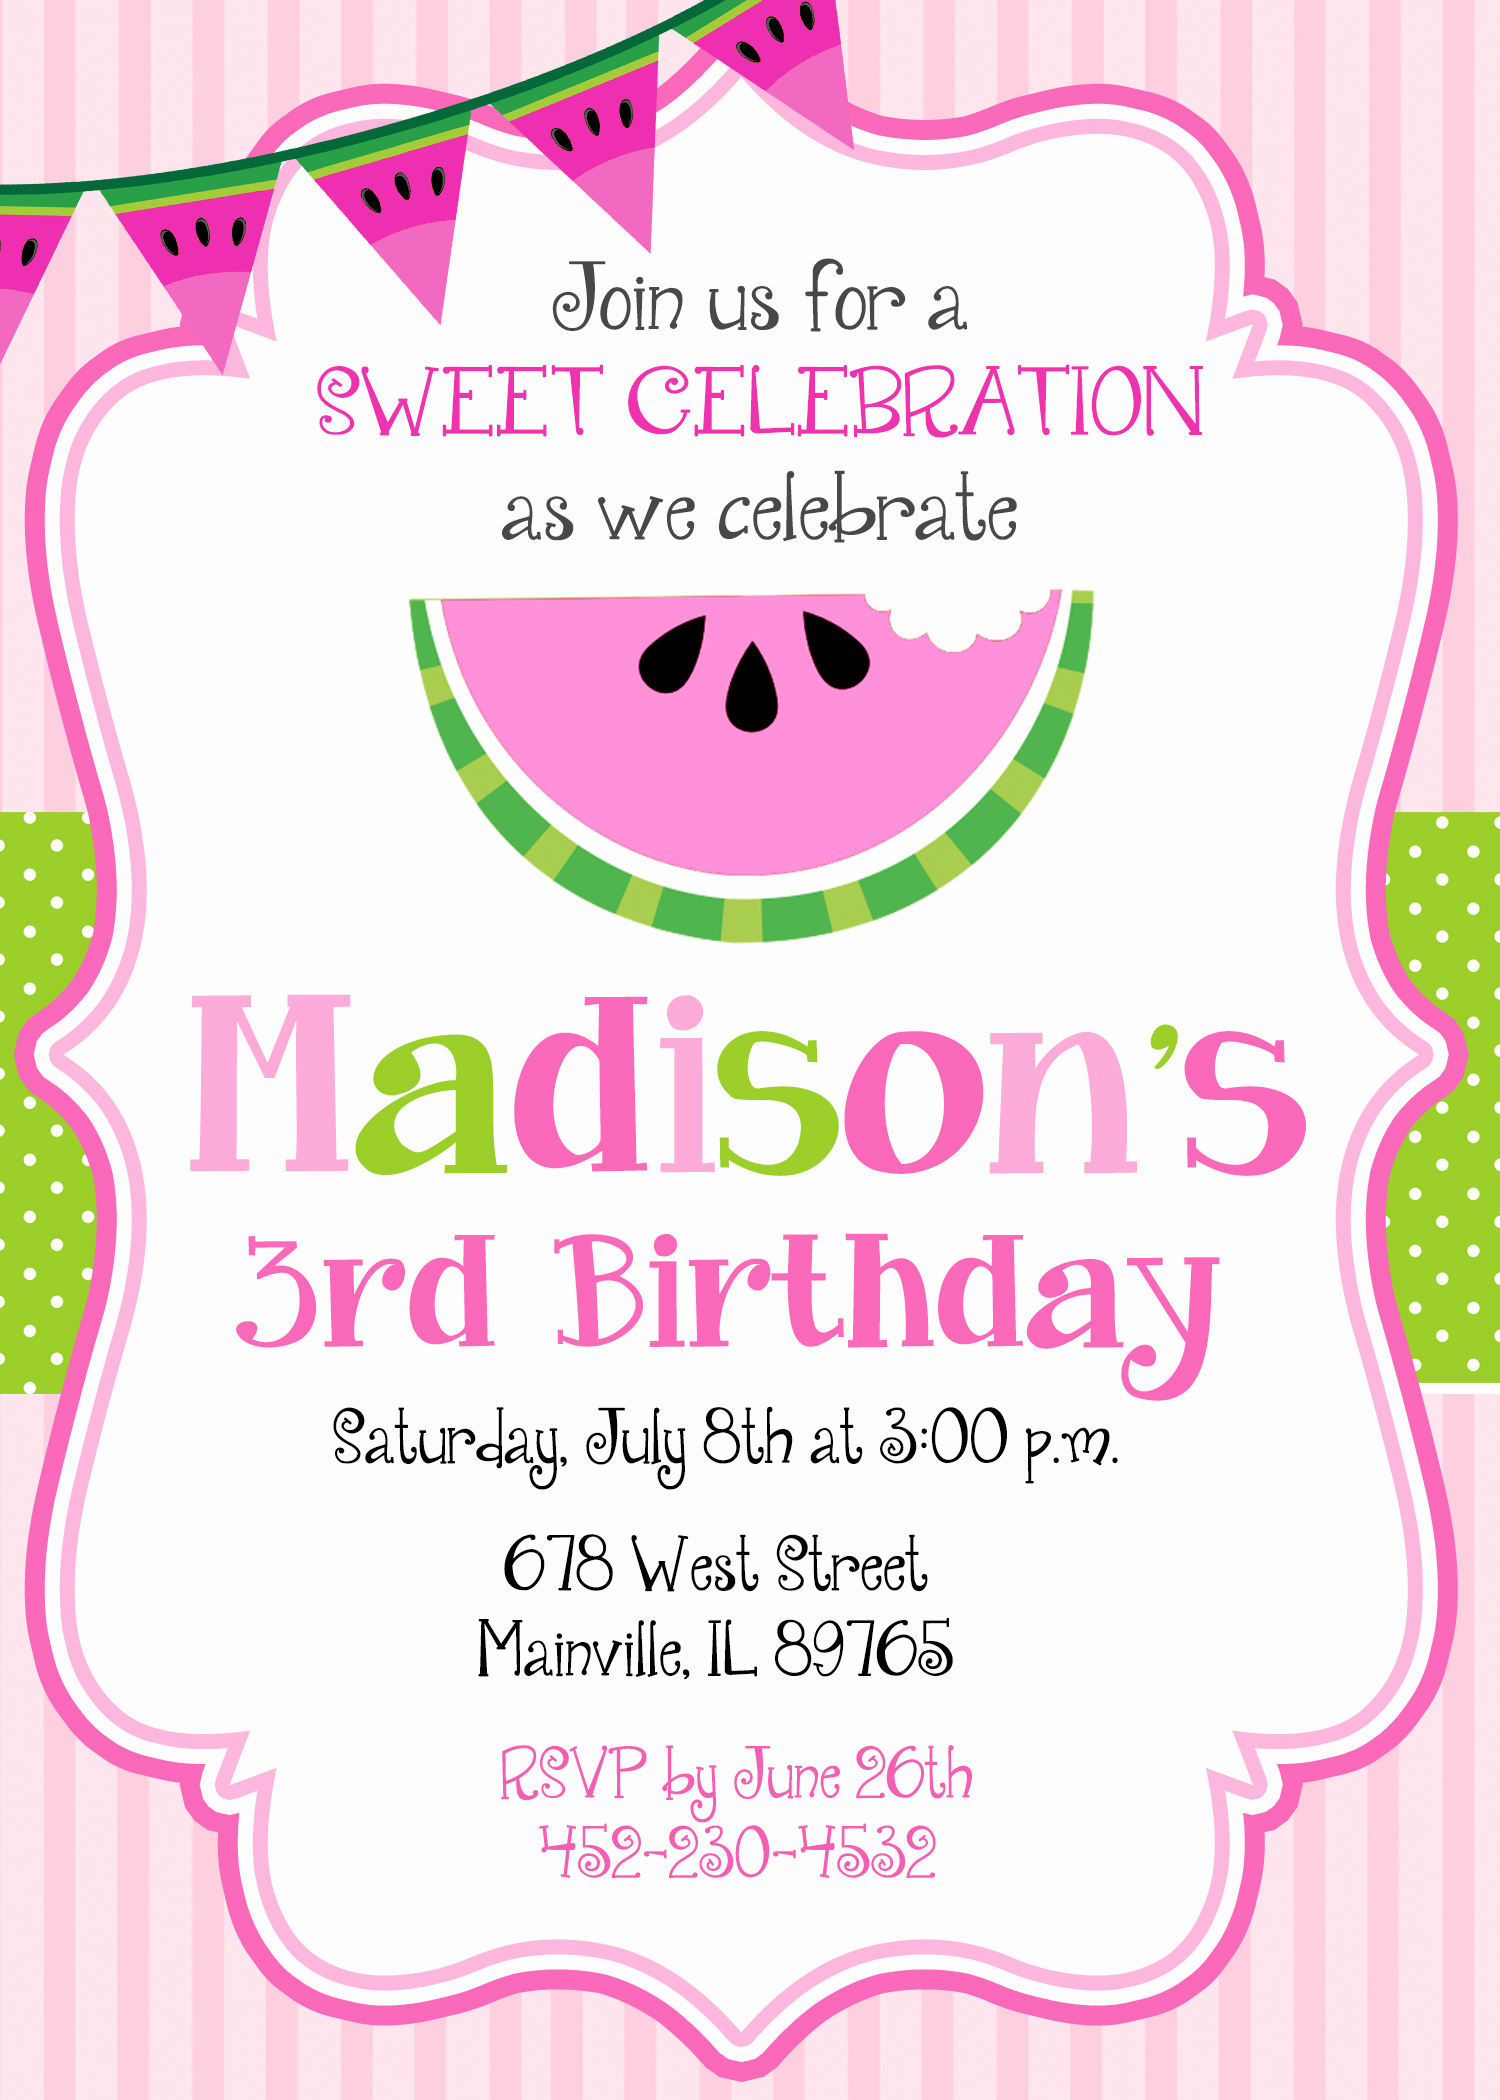 Watermelon Birthday Party Invitation, Watermelon, Melon, Fruit ...